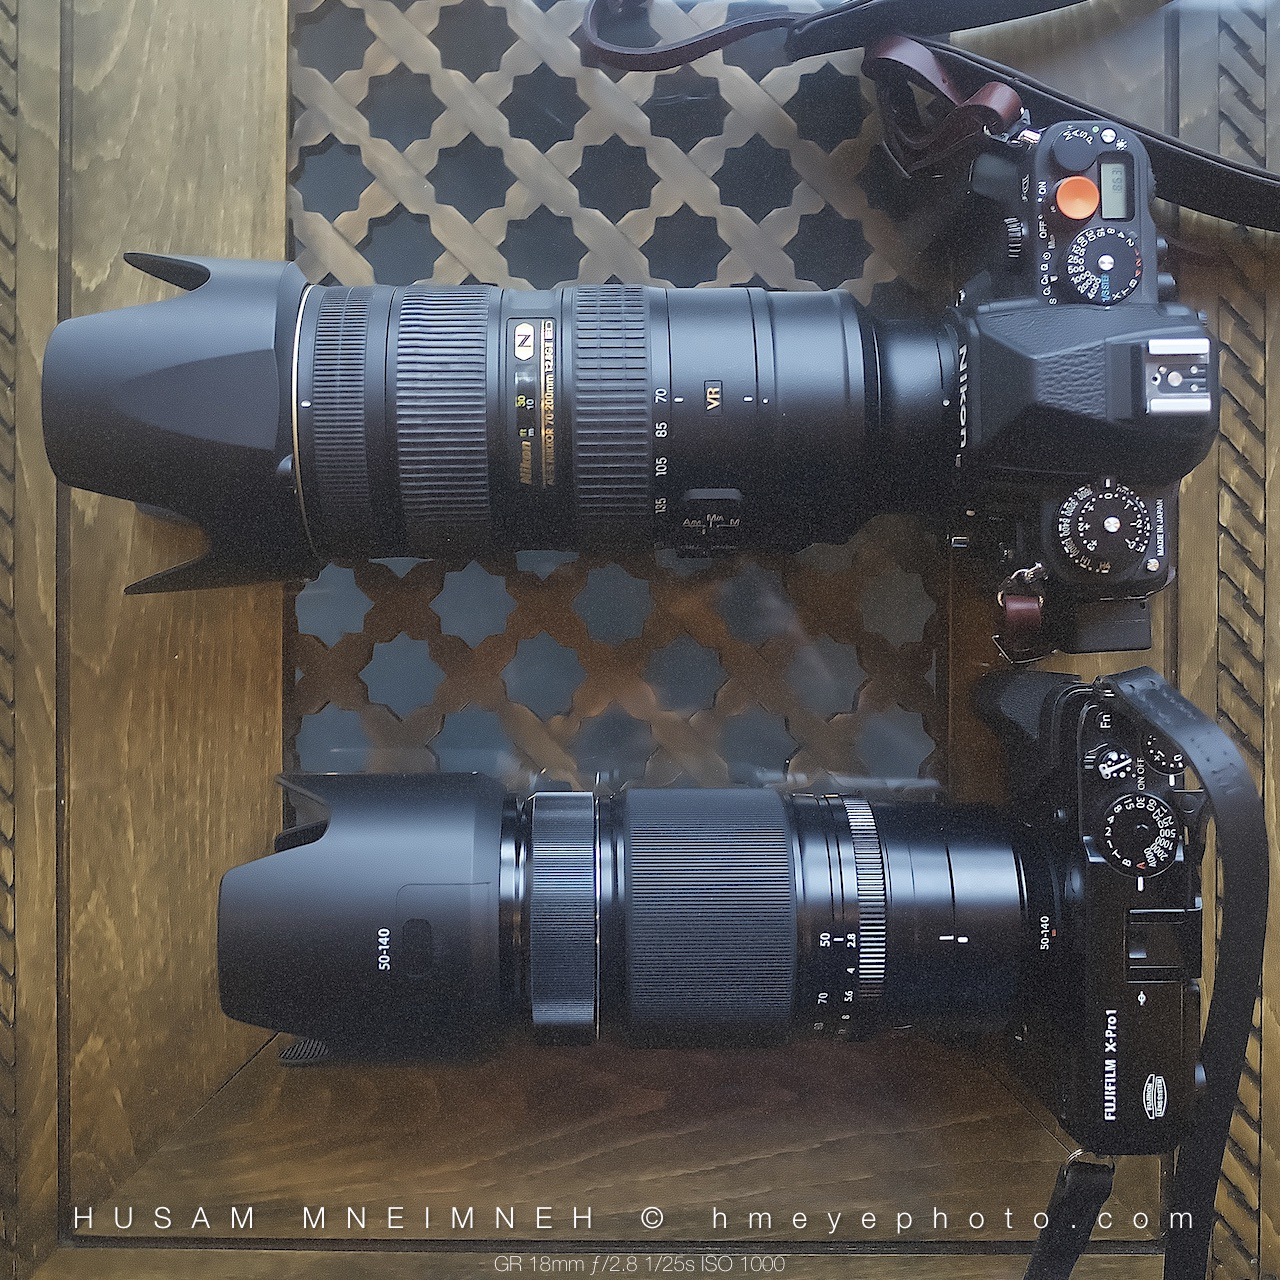 fuji xf 50 140 f2 8 wr vs nikkor 70 200mm f2 8 vr ii size comparison husam mneimneh. Black Bedroom Furniture Sets. Home Design Ideas